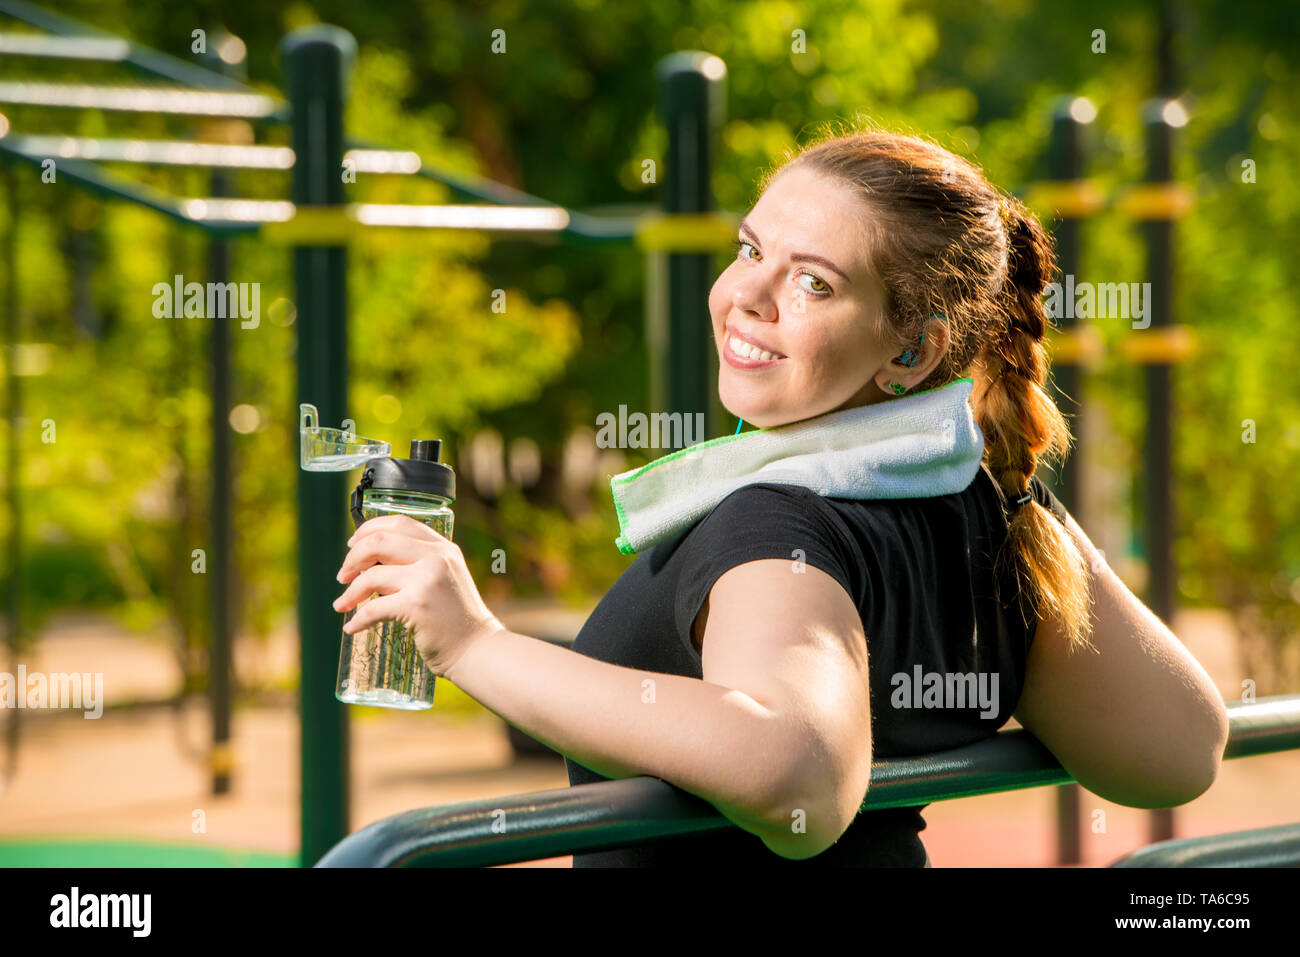 girl over size after workout resting, work on your body concept photo - Stock Image